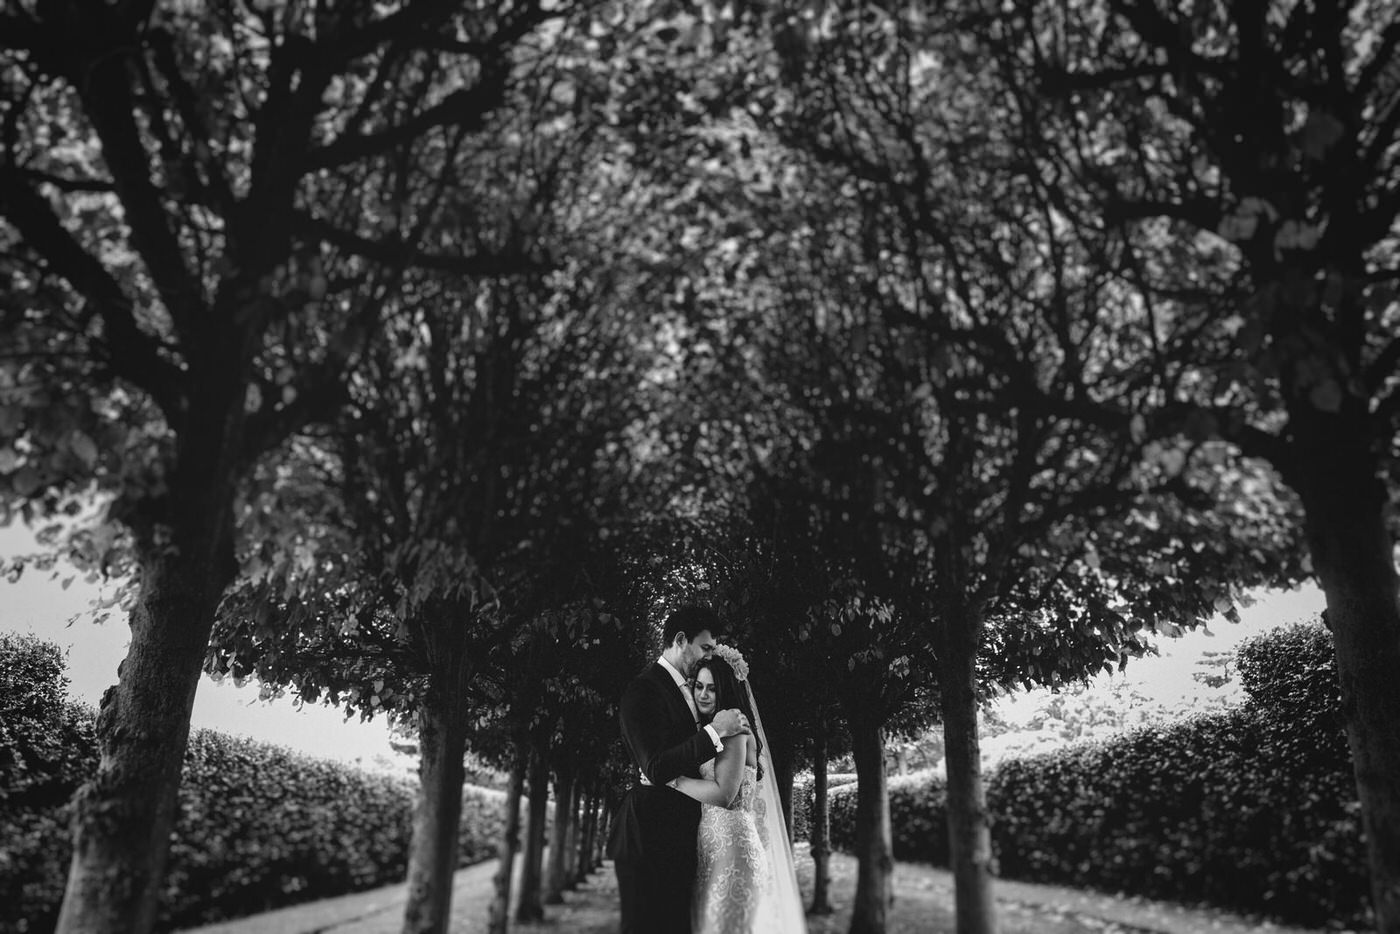 the bride and groom share a beautiful intimate moment underneath the trees at Thornton Manor